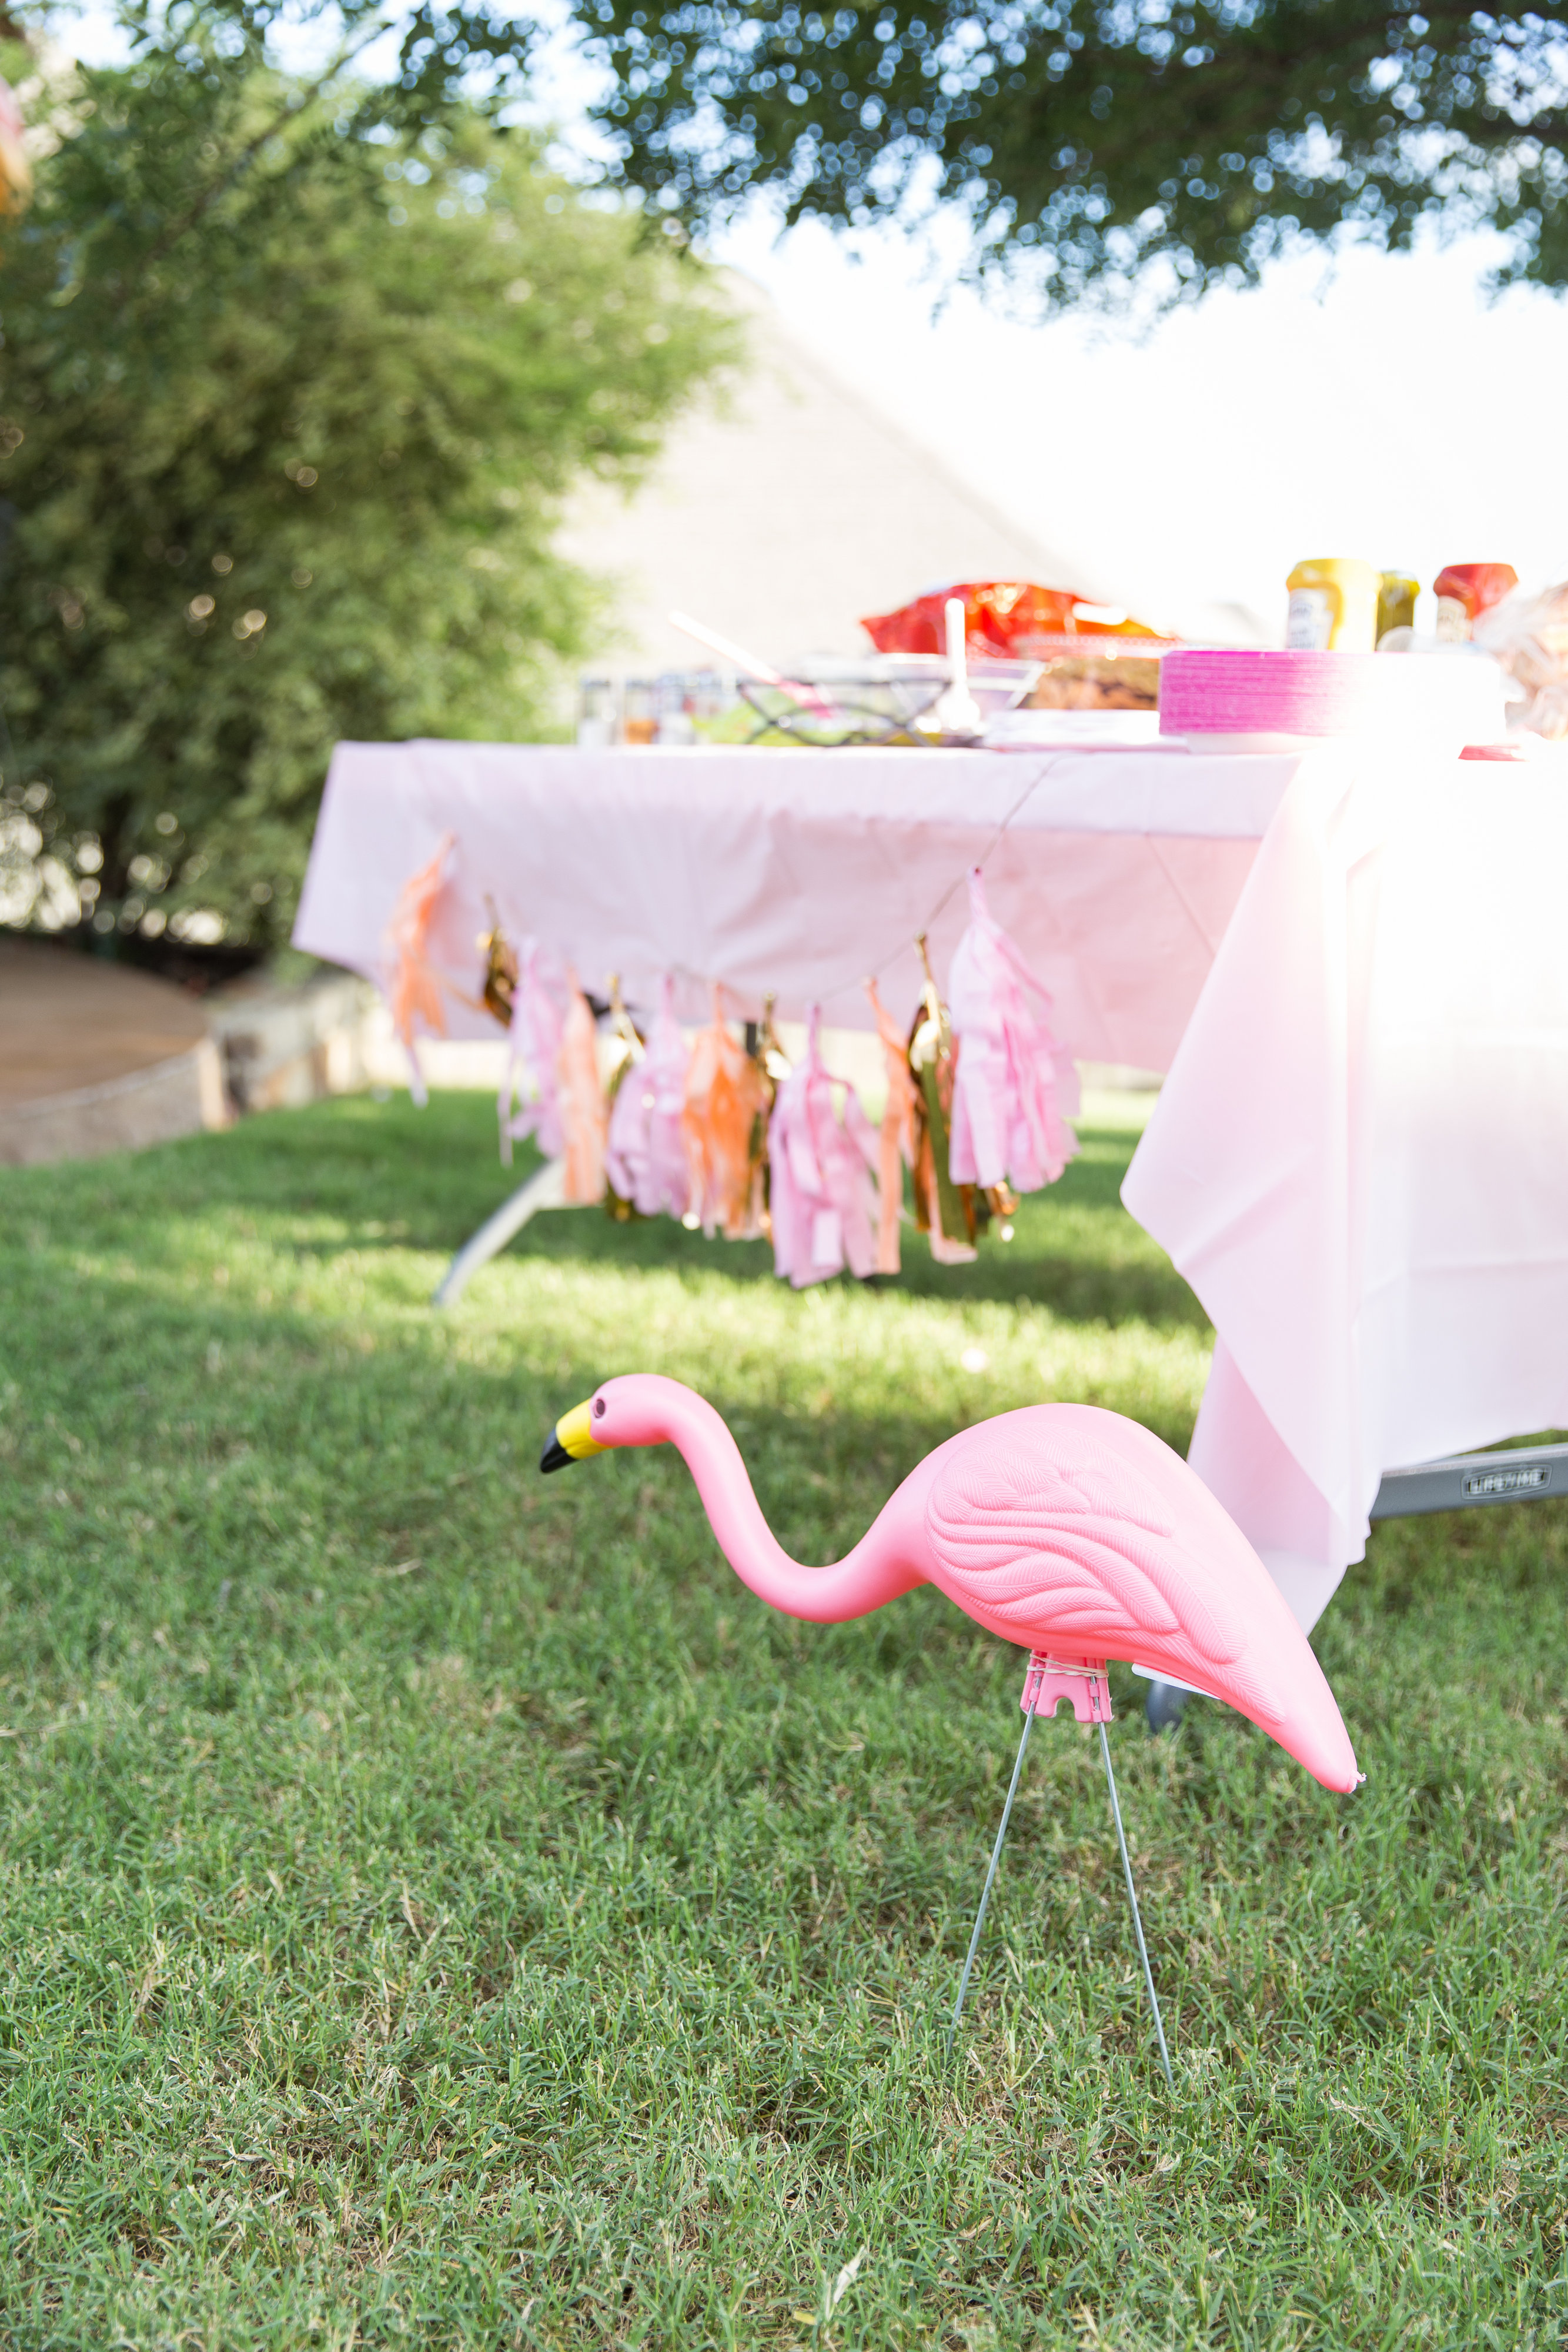 View More: http://margodawnphotography.pass.us/flamingo-fling